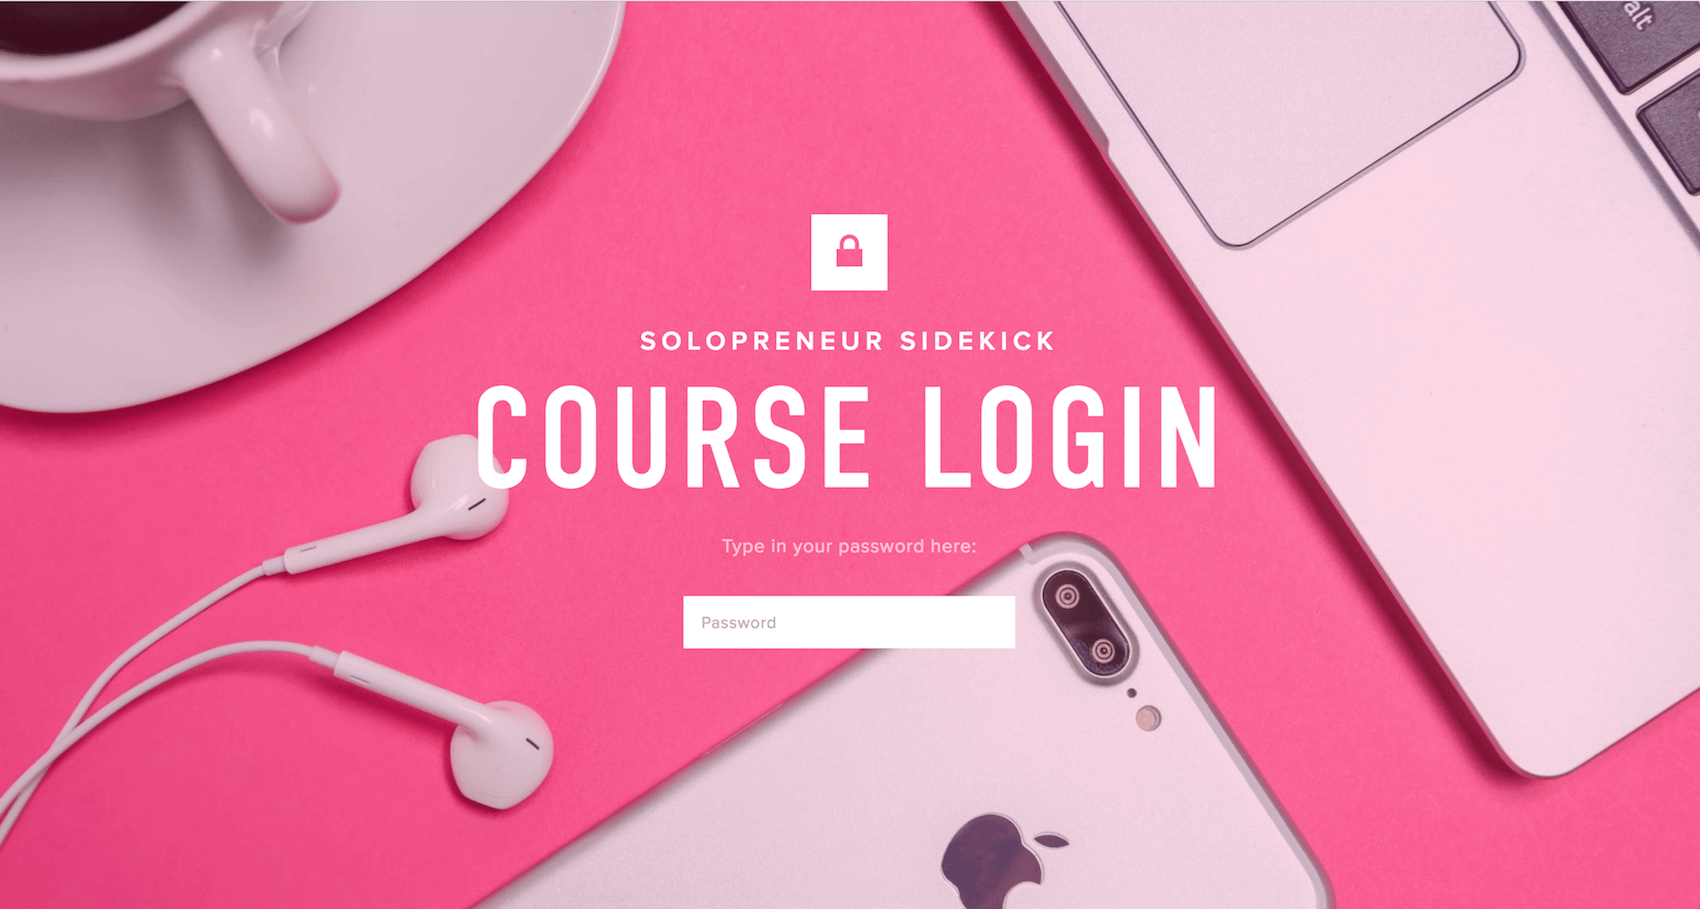 Squarespace-online-course-login-page.png